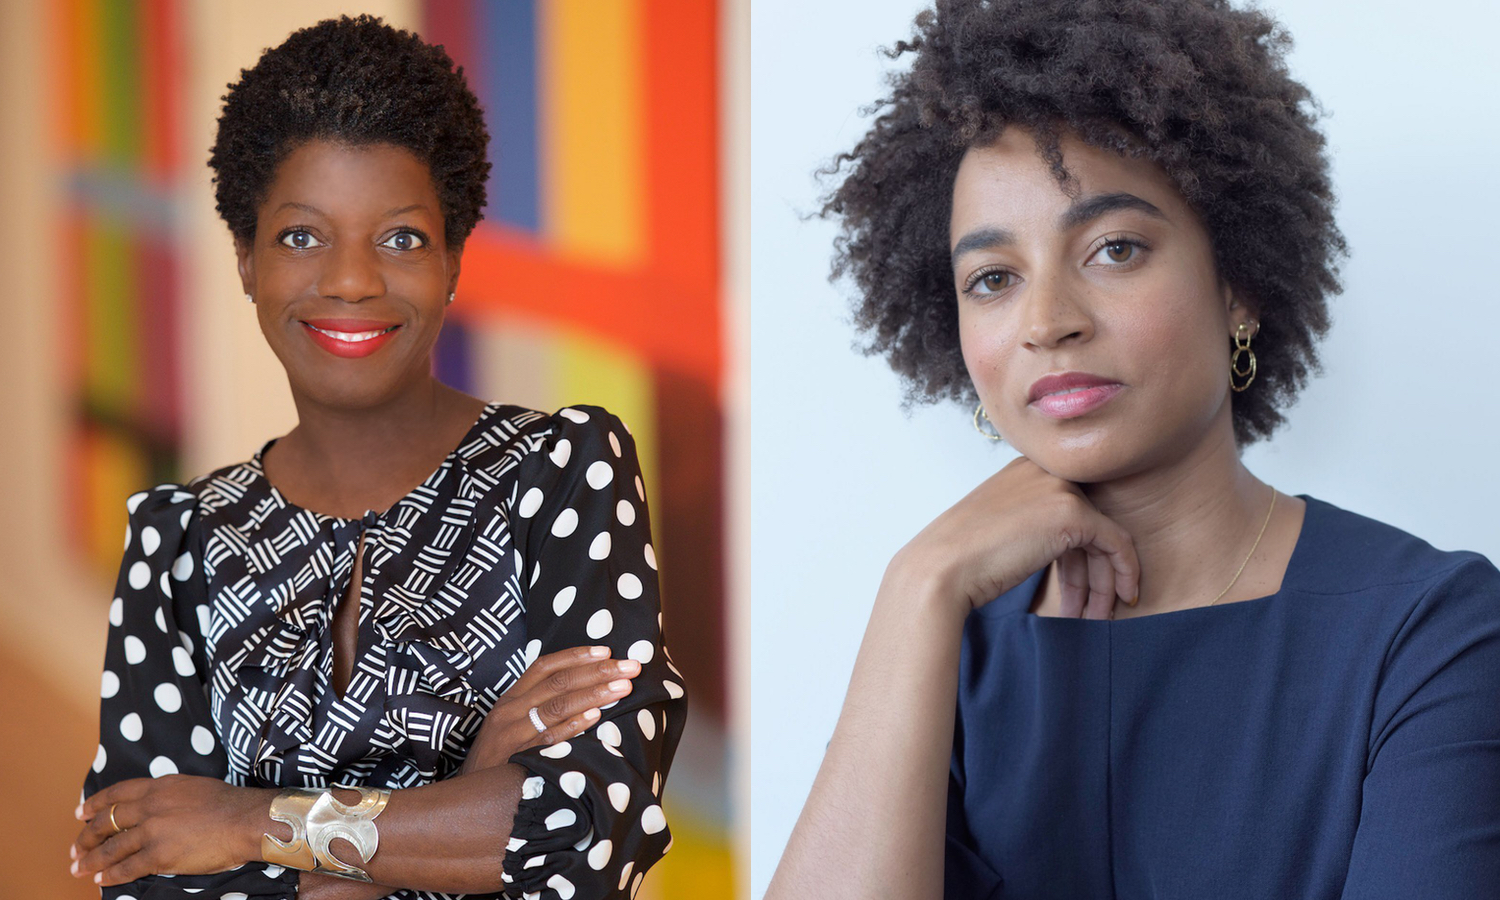 Black Icons of Art: Thelma Golden and Rujeko Hockley